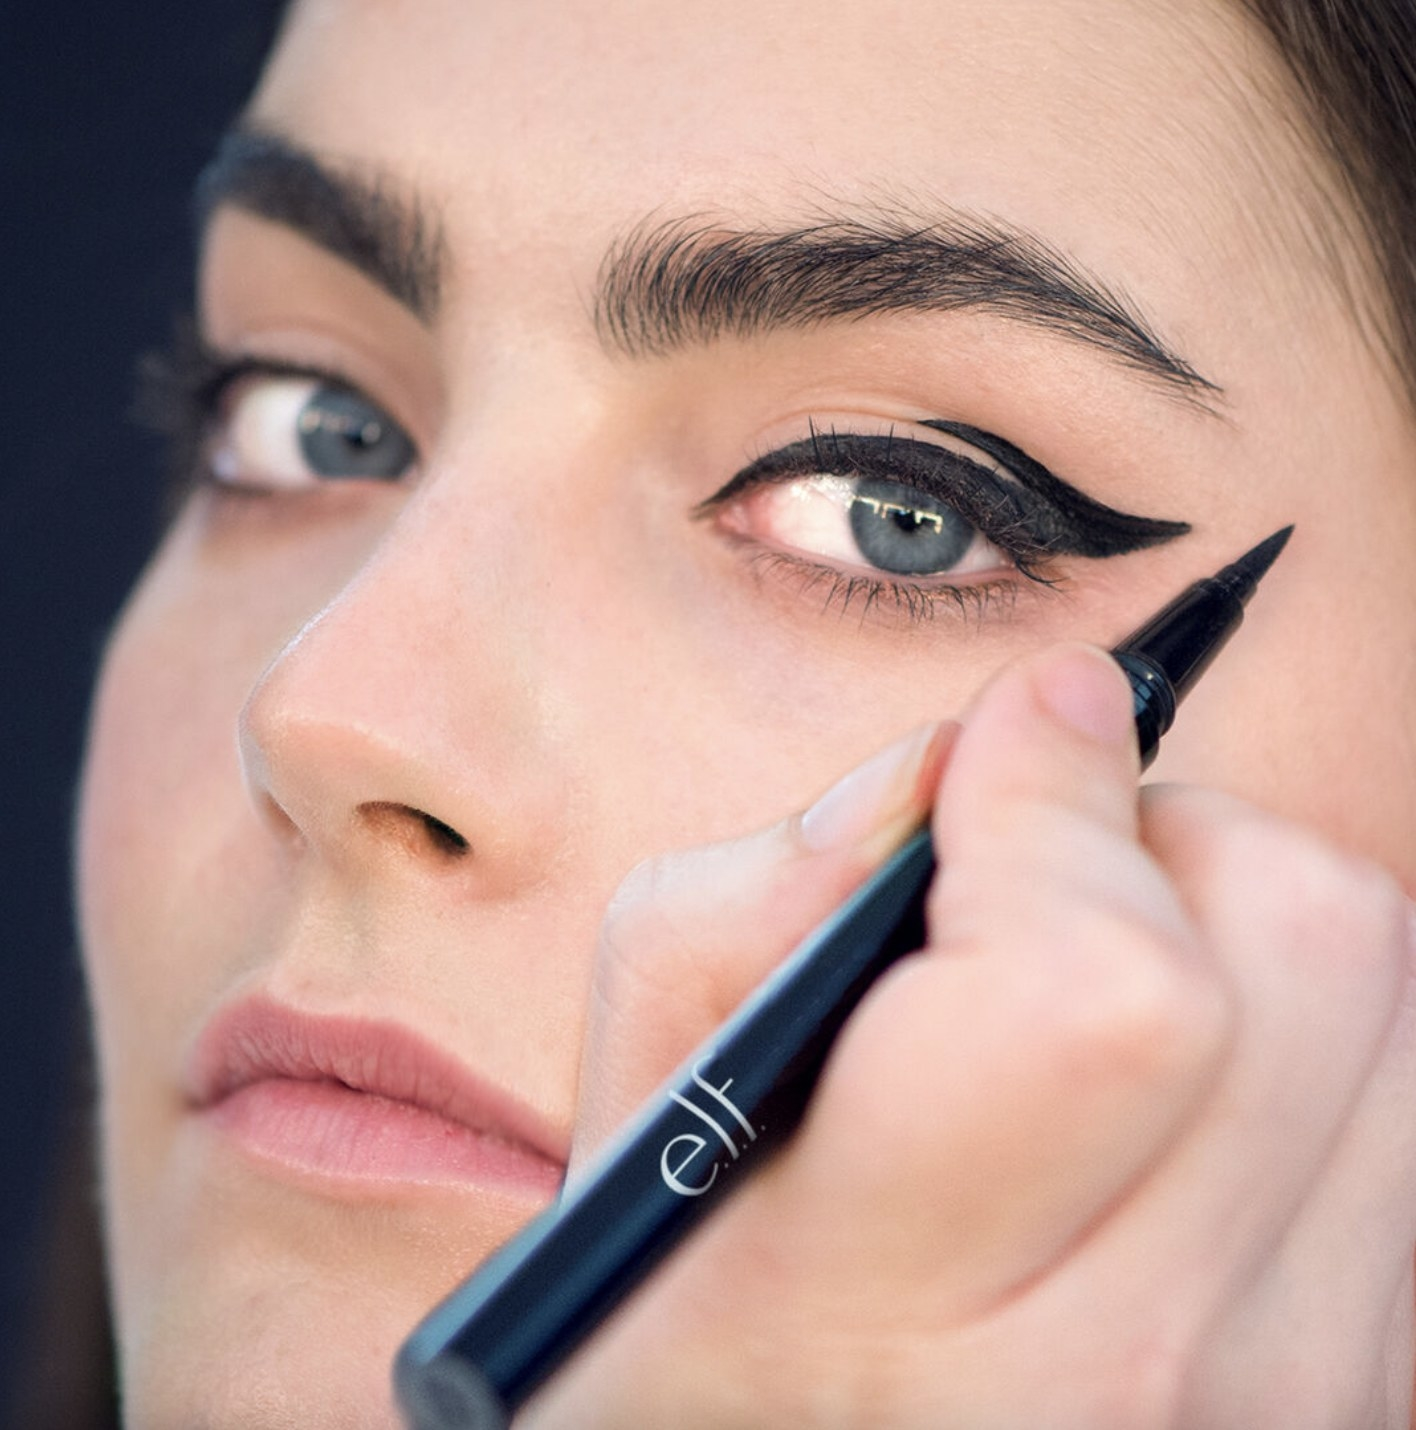 A woman holding an eyeliner pen with a winged eyeliner look